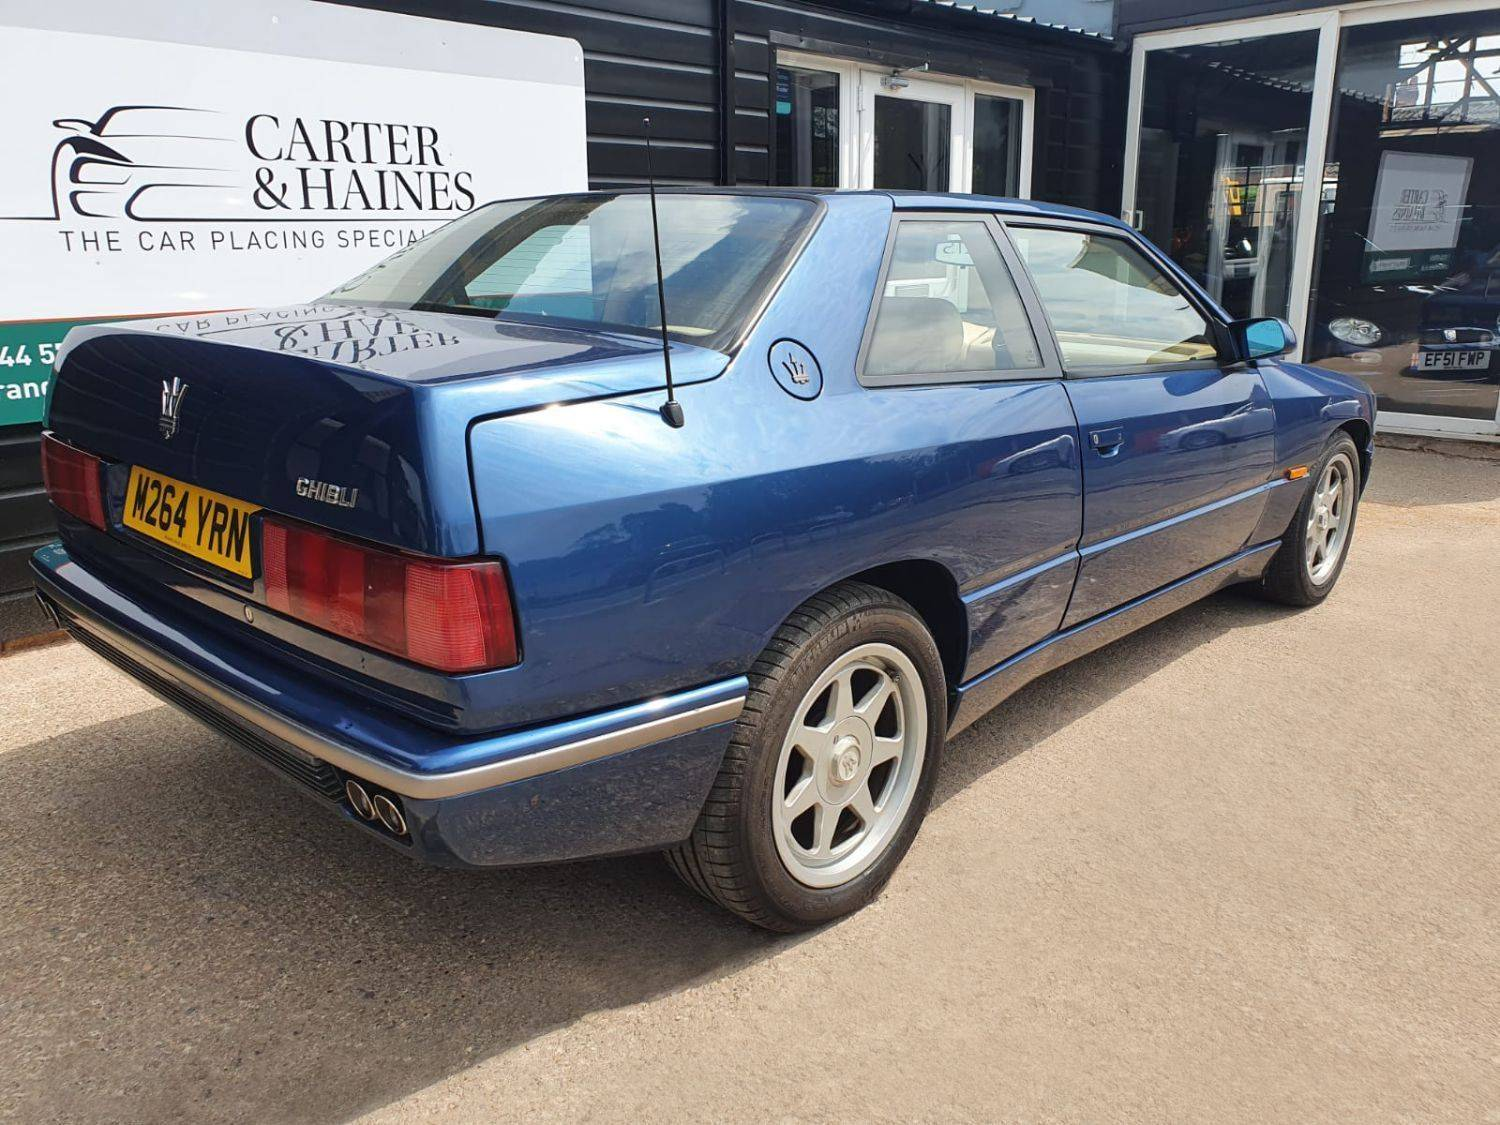 For Sale: Maserati Ghibli 2.8 (1995) offered for GBP 14,995